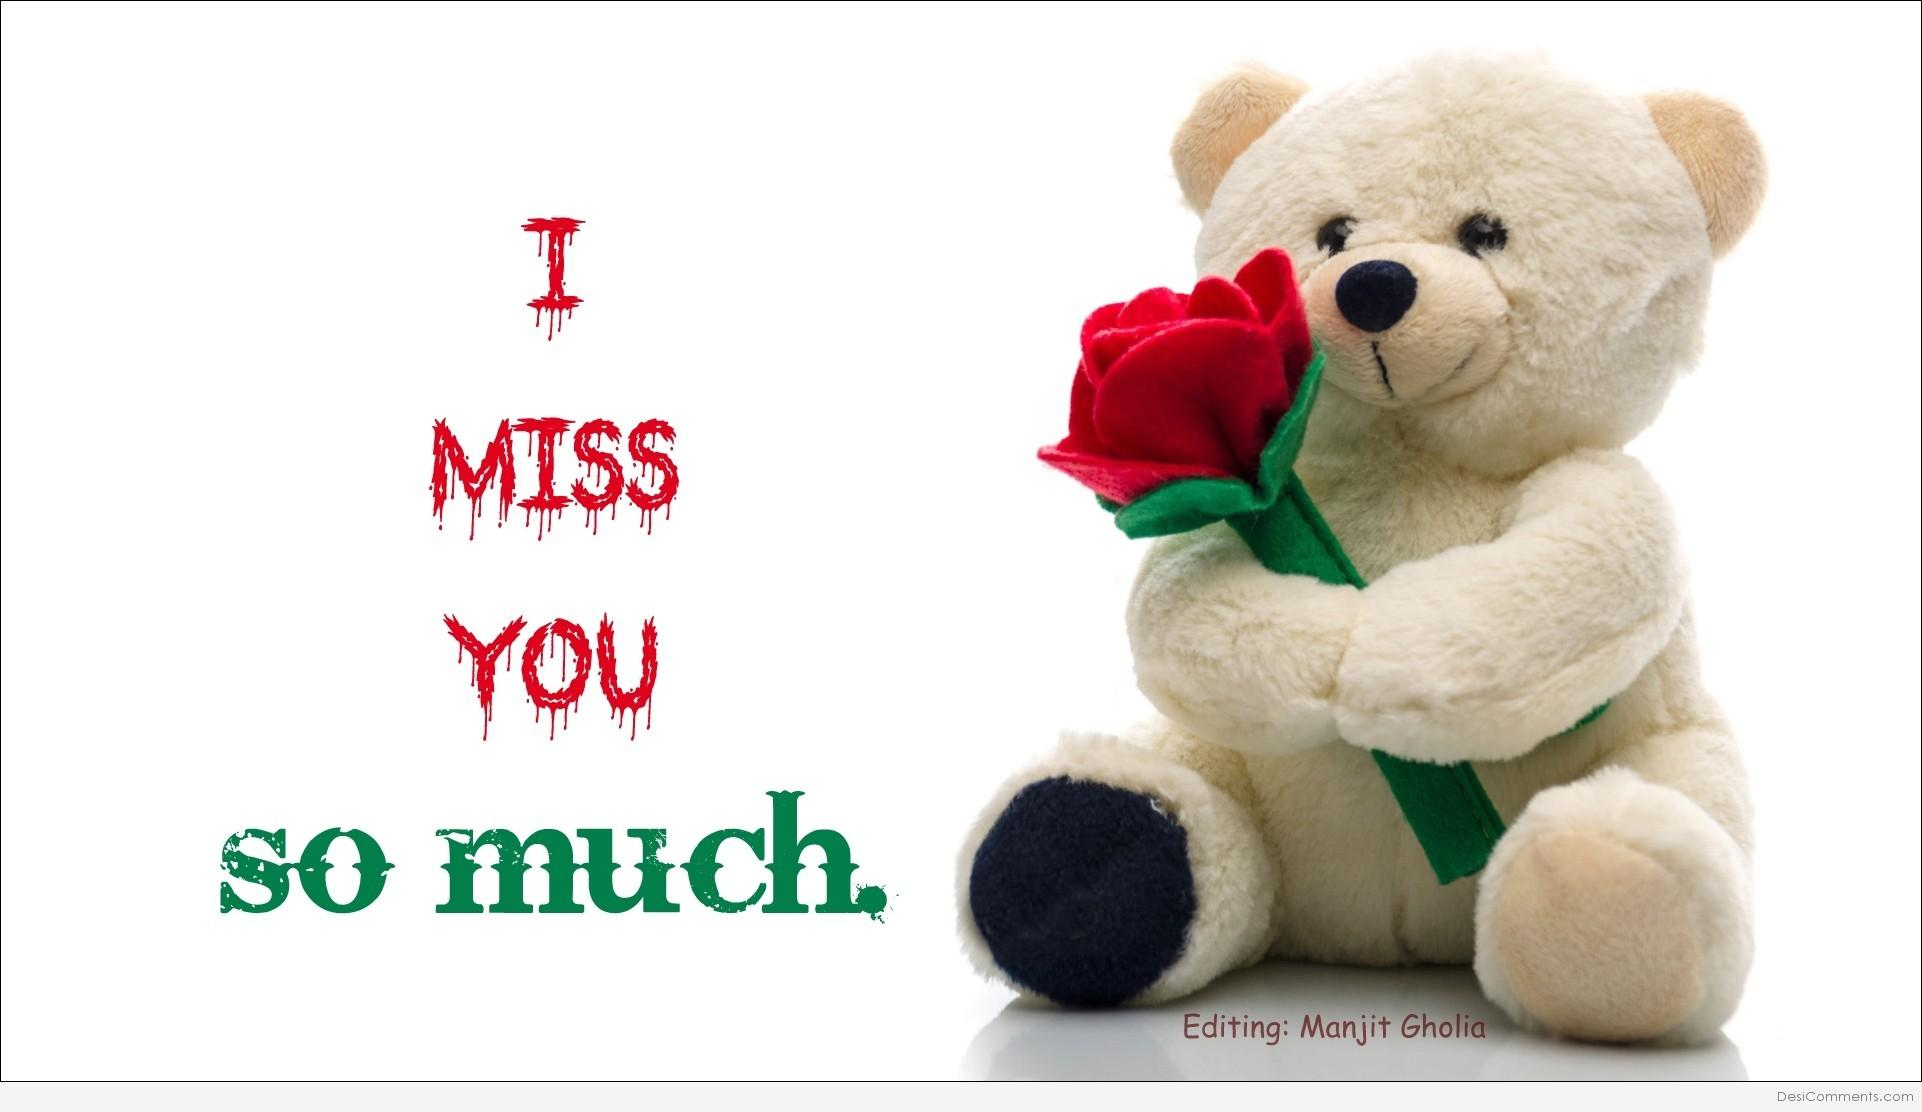 I Miss You So Much Teddy Wishes Greeting Image